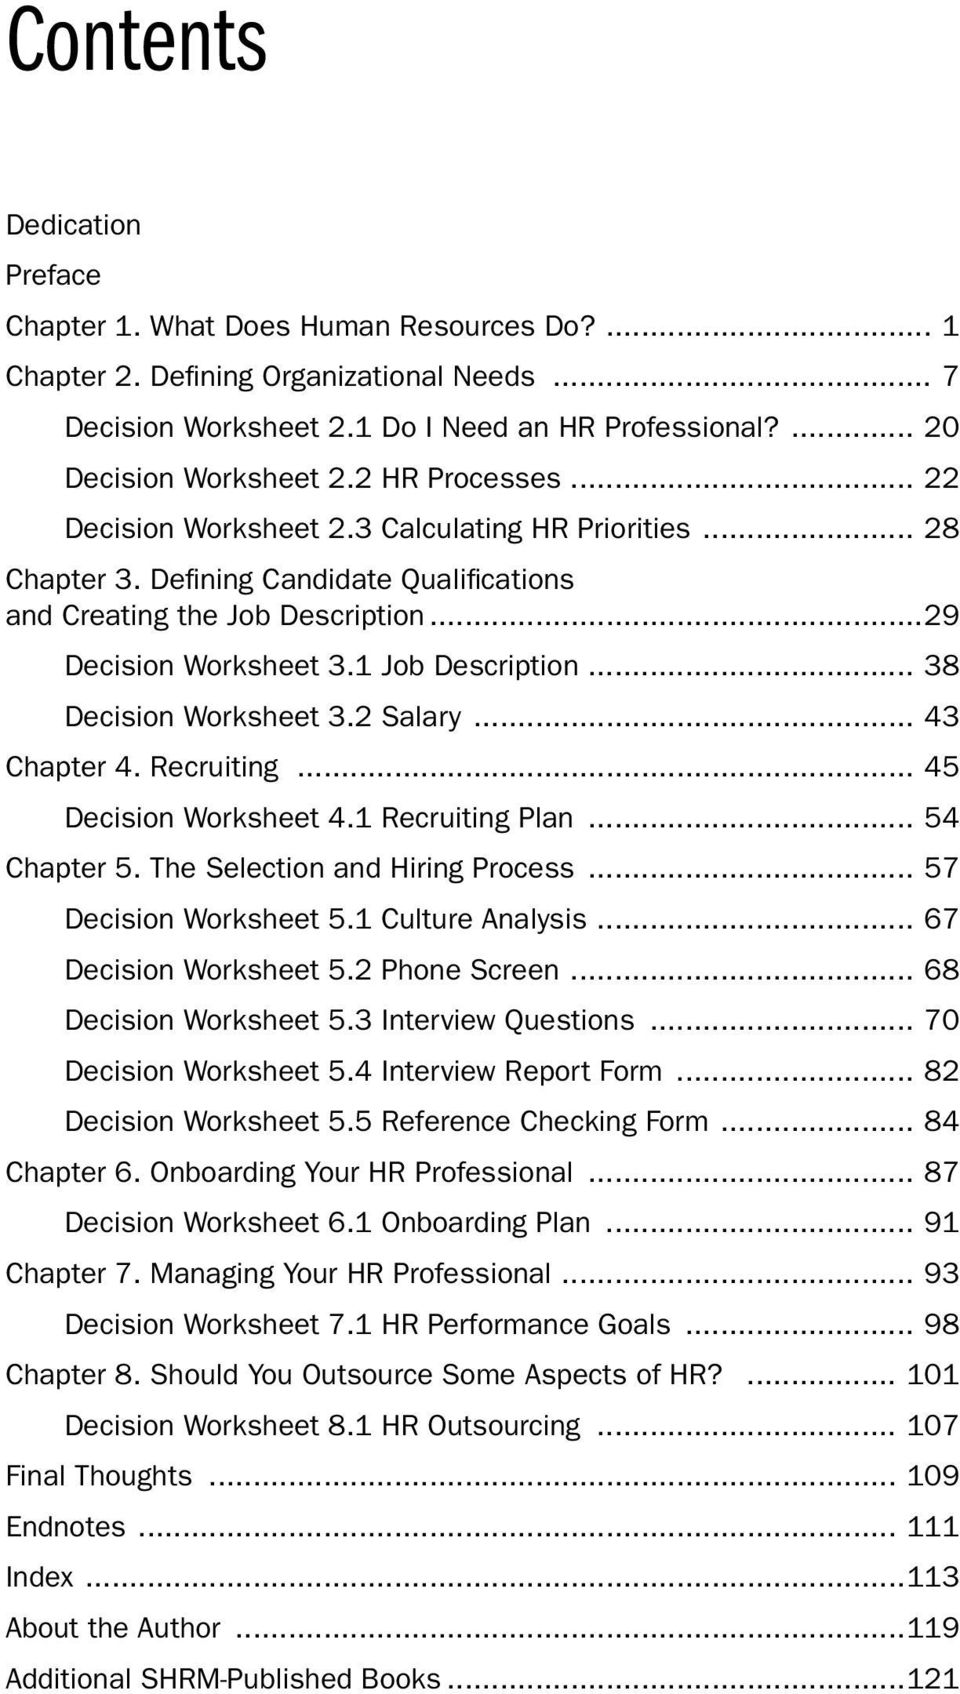 .. 38 Decision Worksheet 3.2 Salary... 43 Chapter 4. Recruiting... 45 Decision Worksheet 4.1 Recruiting Plan... 54 Chapter 5. The Selection and Hiring Process... 57 Decision Worksheet 5.